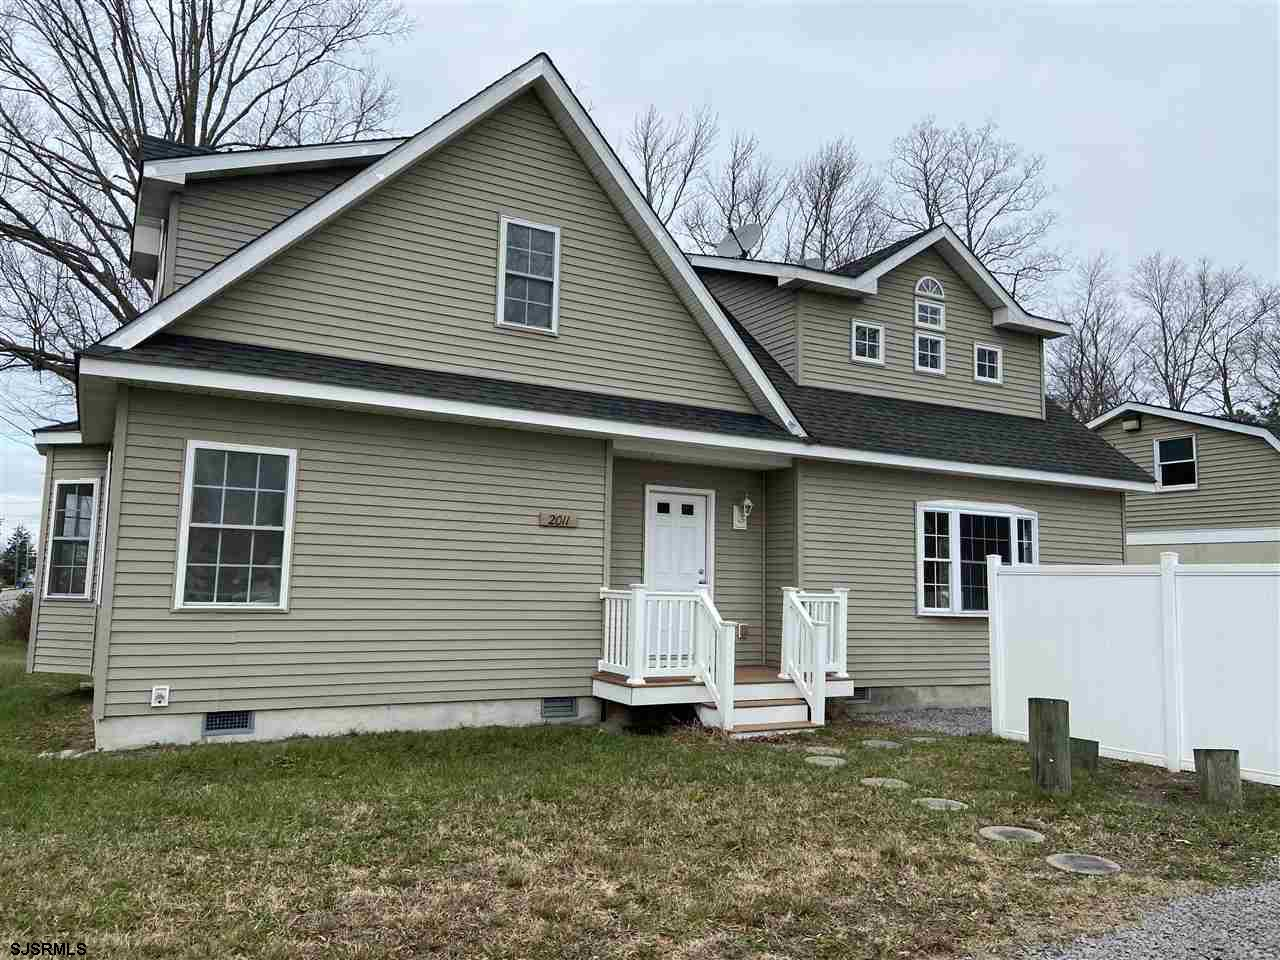 This is the perfect opportunity to own a single family home and a huge detached garage (28'11 X 31'9) in a very desirable location. The property fronts on Route 50. The property would be good for a home business, a tradesman or someone looking to have plenty of storage and room in the garage for work vehicles.This single family 2 story home home consists of a living room that leads into the EIK/dining area. There is a full bath and BD on the 1st floor. Upstairs has another full bath 2/3 generous sized BD's and a laundry room. The backyard is a decent size and fenced in. The garage has a full bath, an office located upstairs (14'0 X 19'7) and a huge loft, (30'10 X 19'7). The entire home has been updated and maintained. You also have multi zo